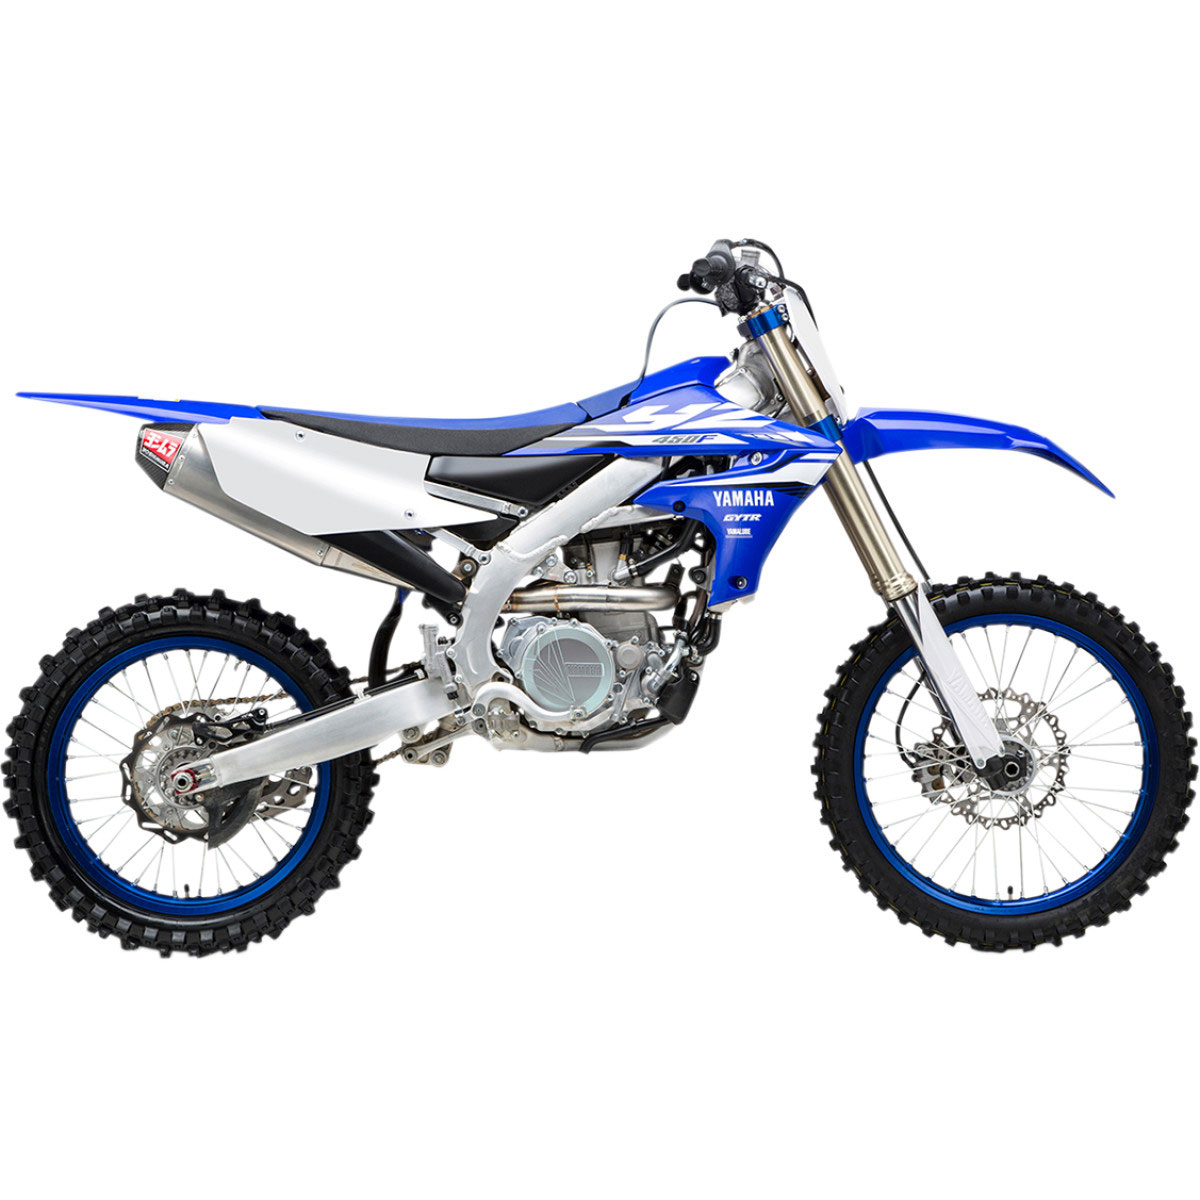 yoshimura rs 4 full exhaust for yz450f 18